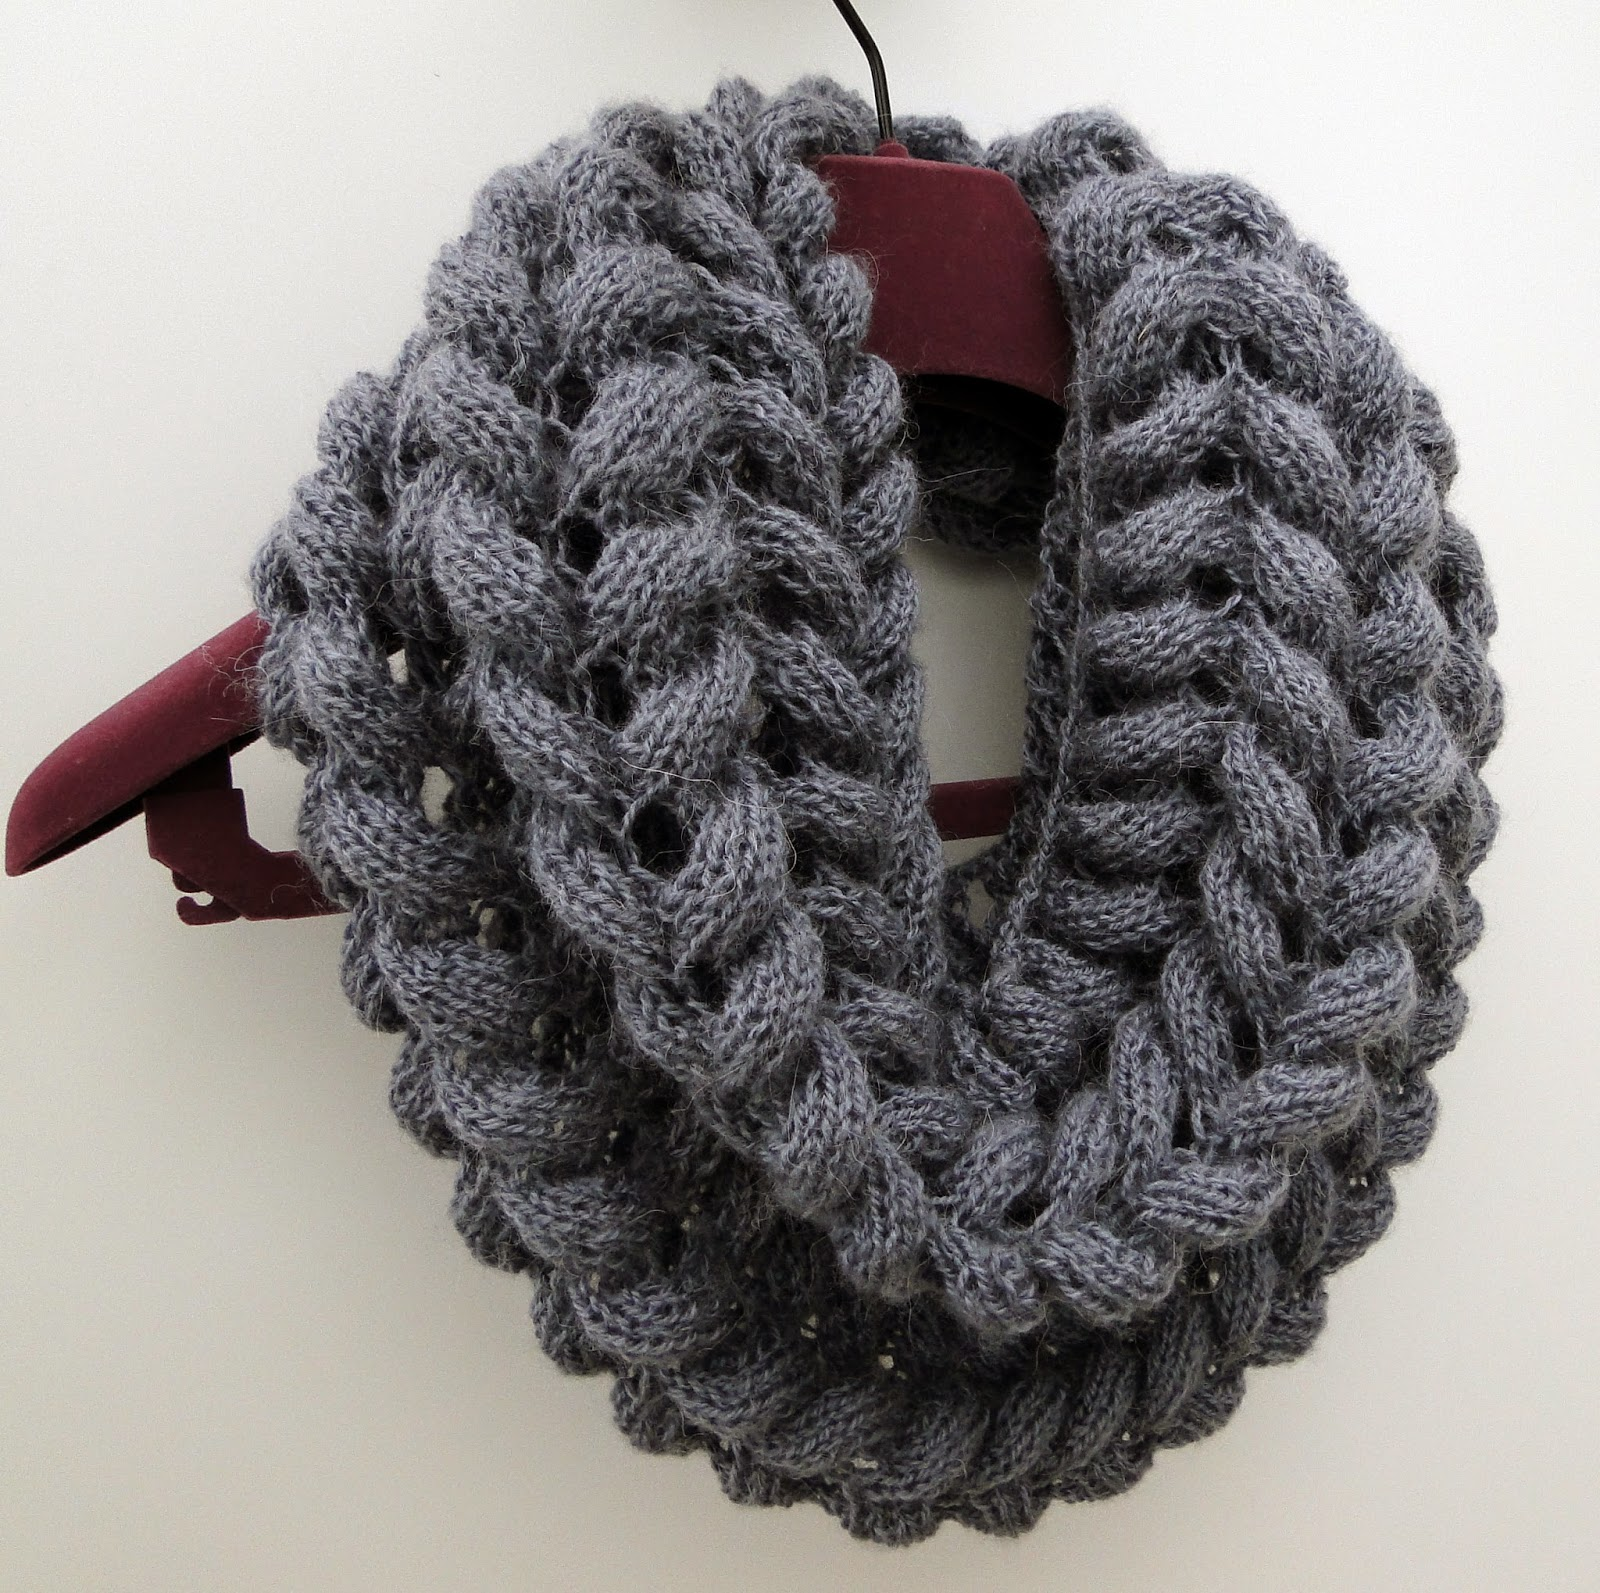 Simple Knit Cowl Pattern : 3 Rabbits Patterns: Scarf Cowl Knitting Pattern